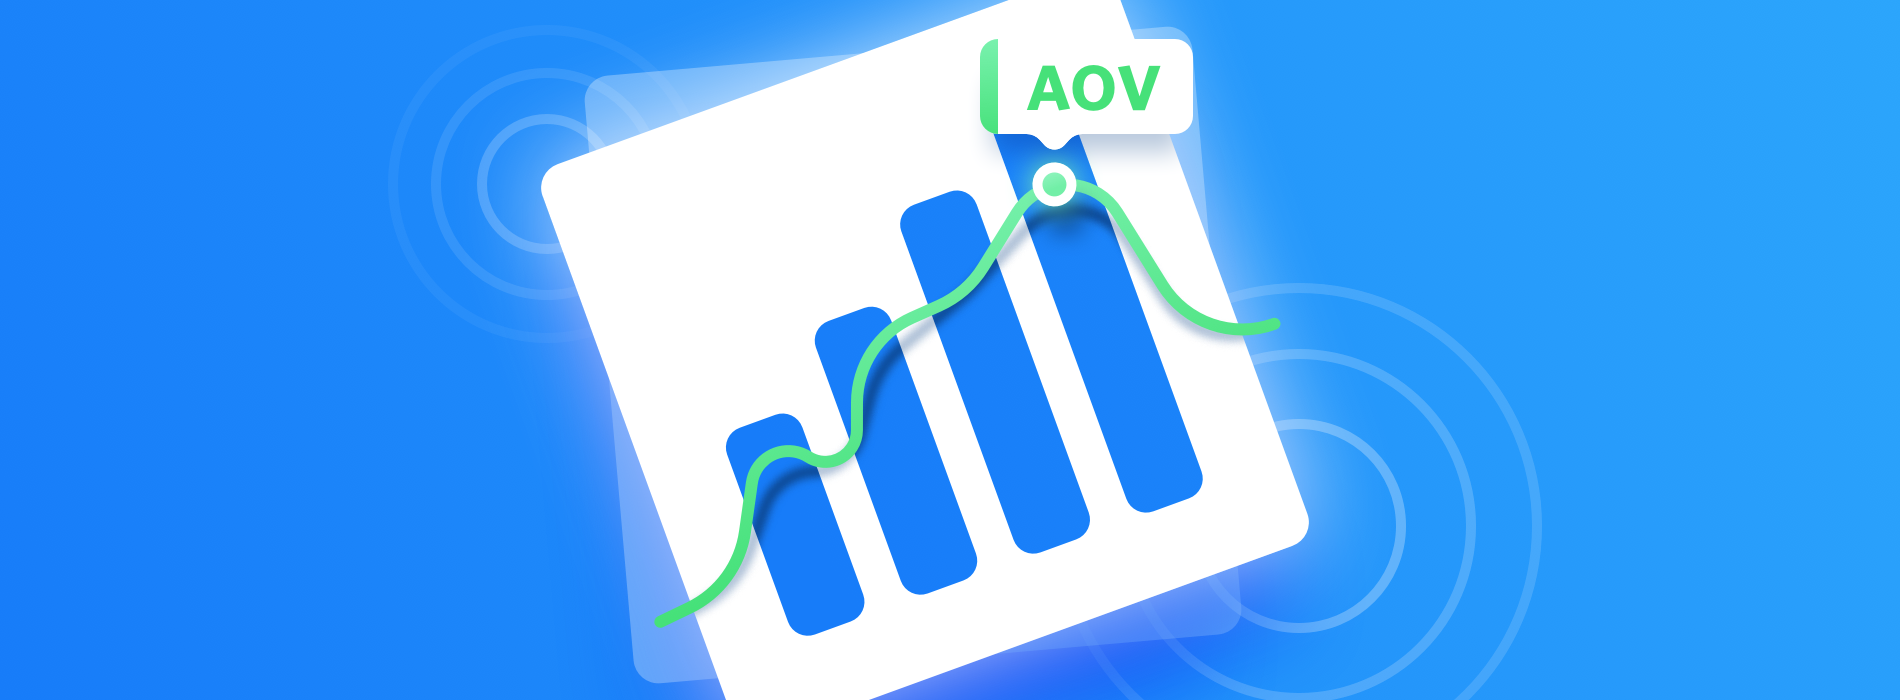 Ecommerce Average Order Values: Trends and Stats